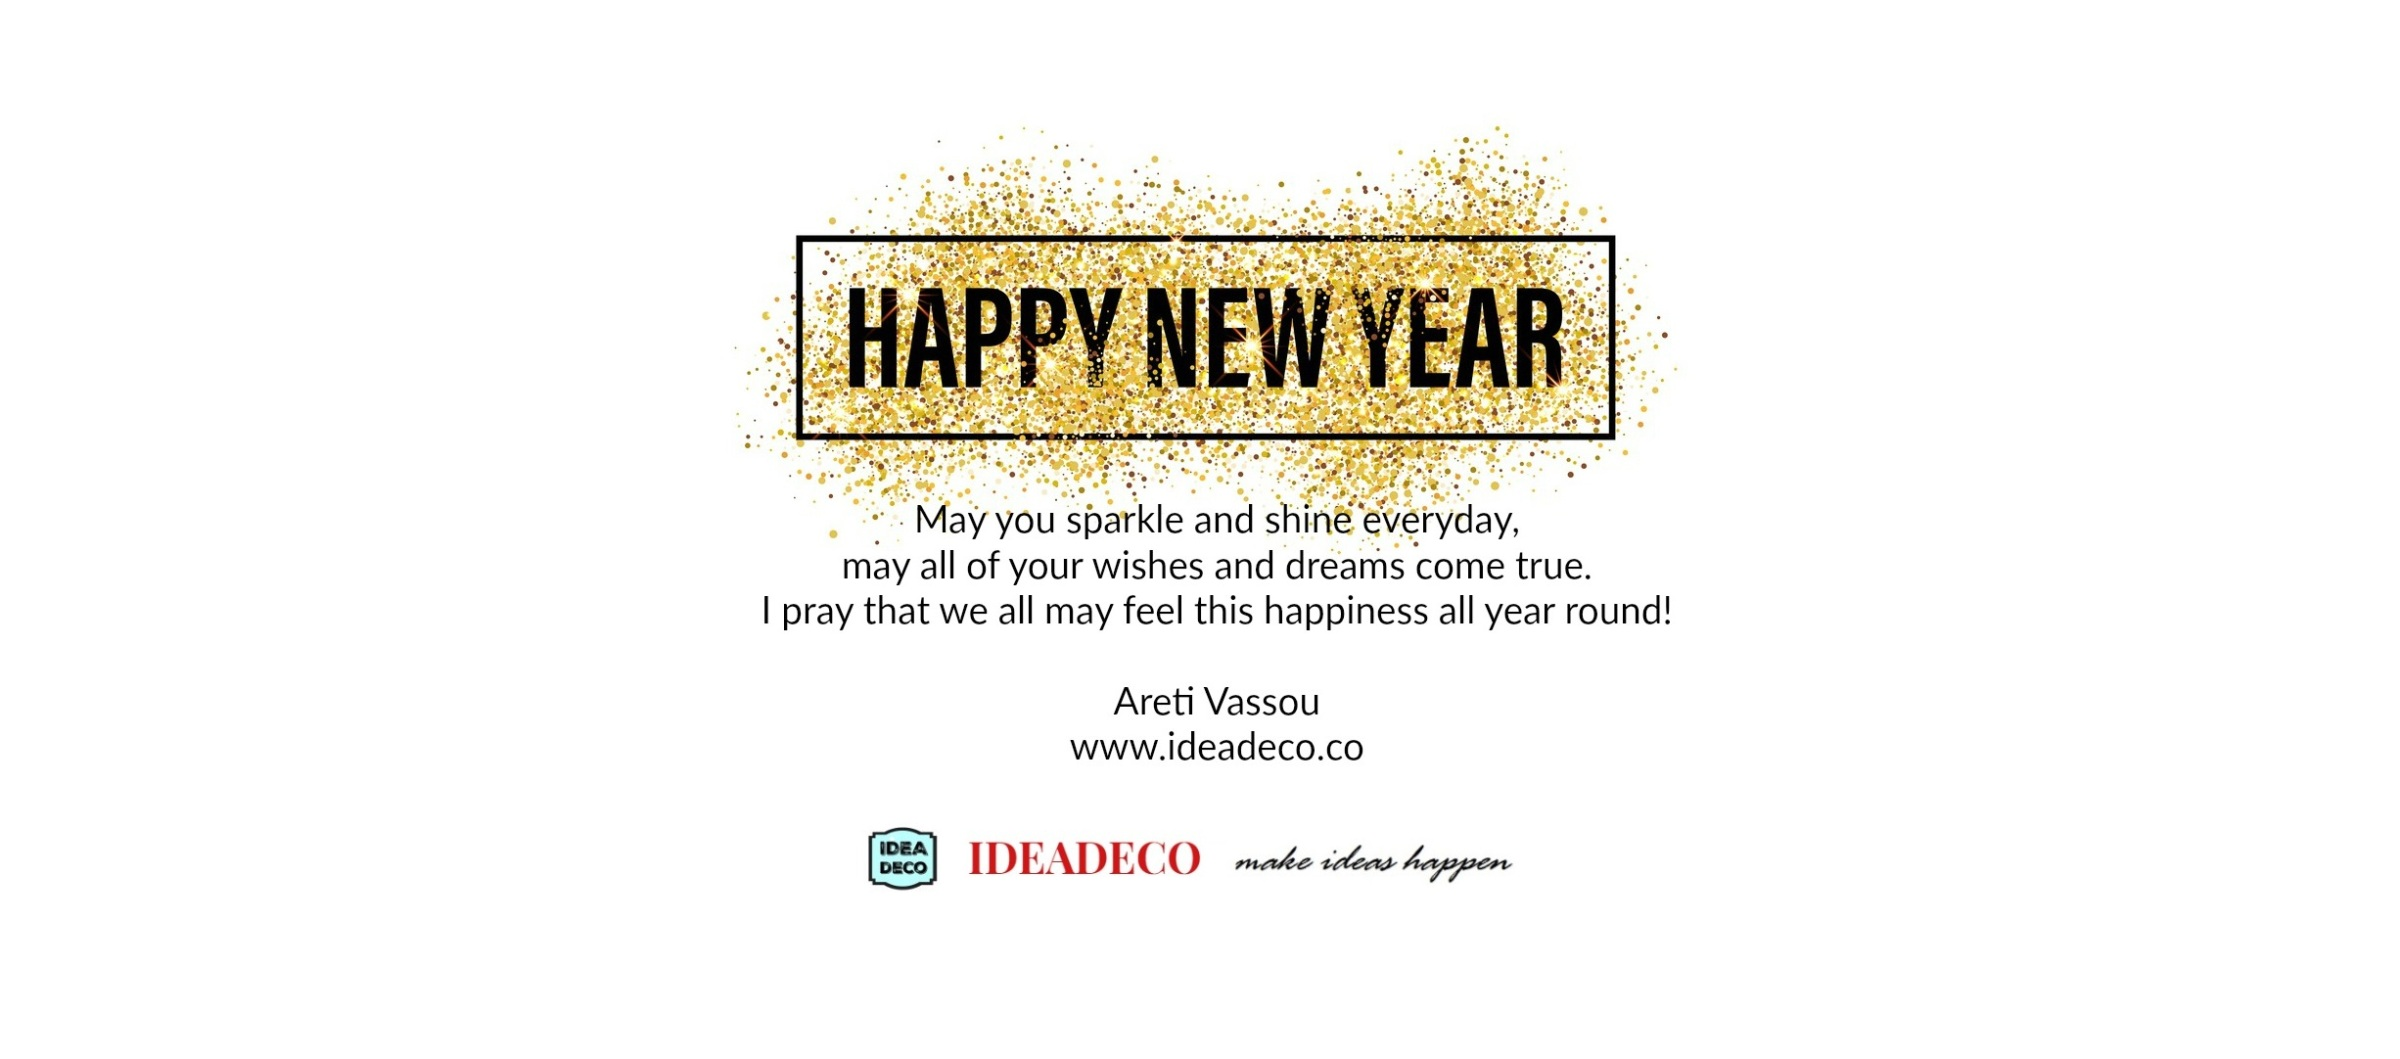 Happy New Year from Areti Vassou and Ideadeco Team